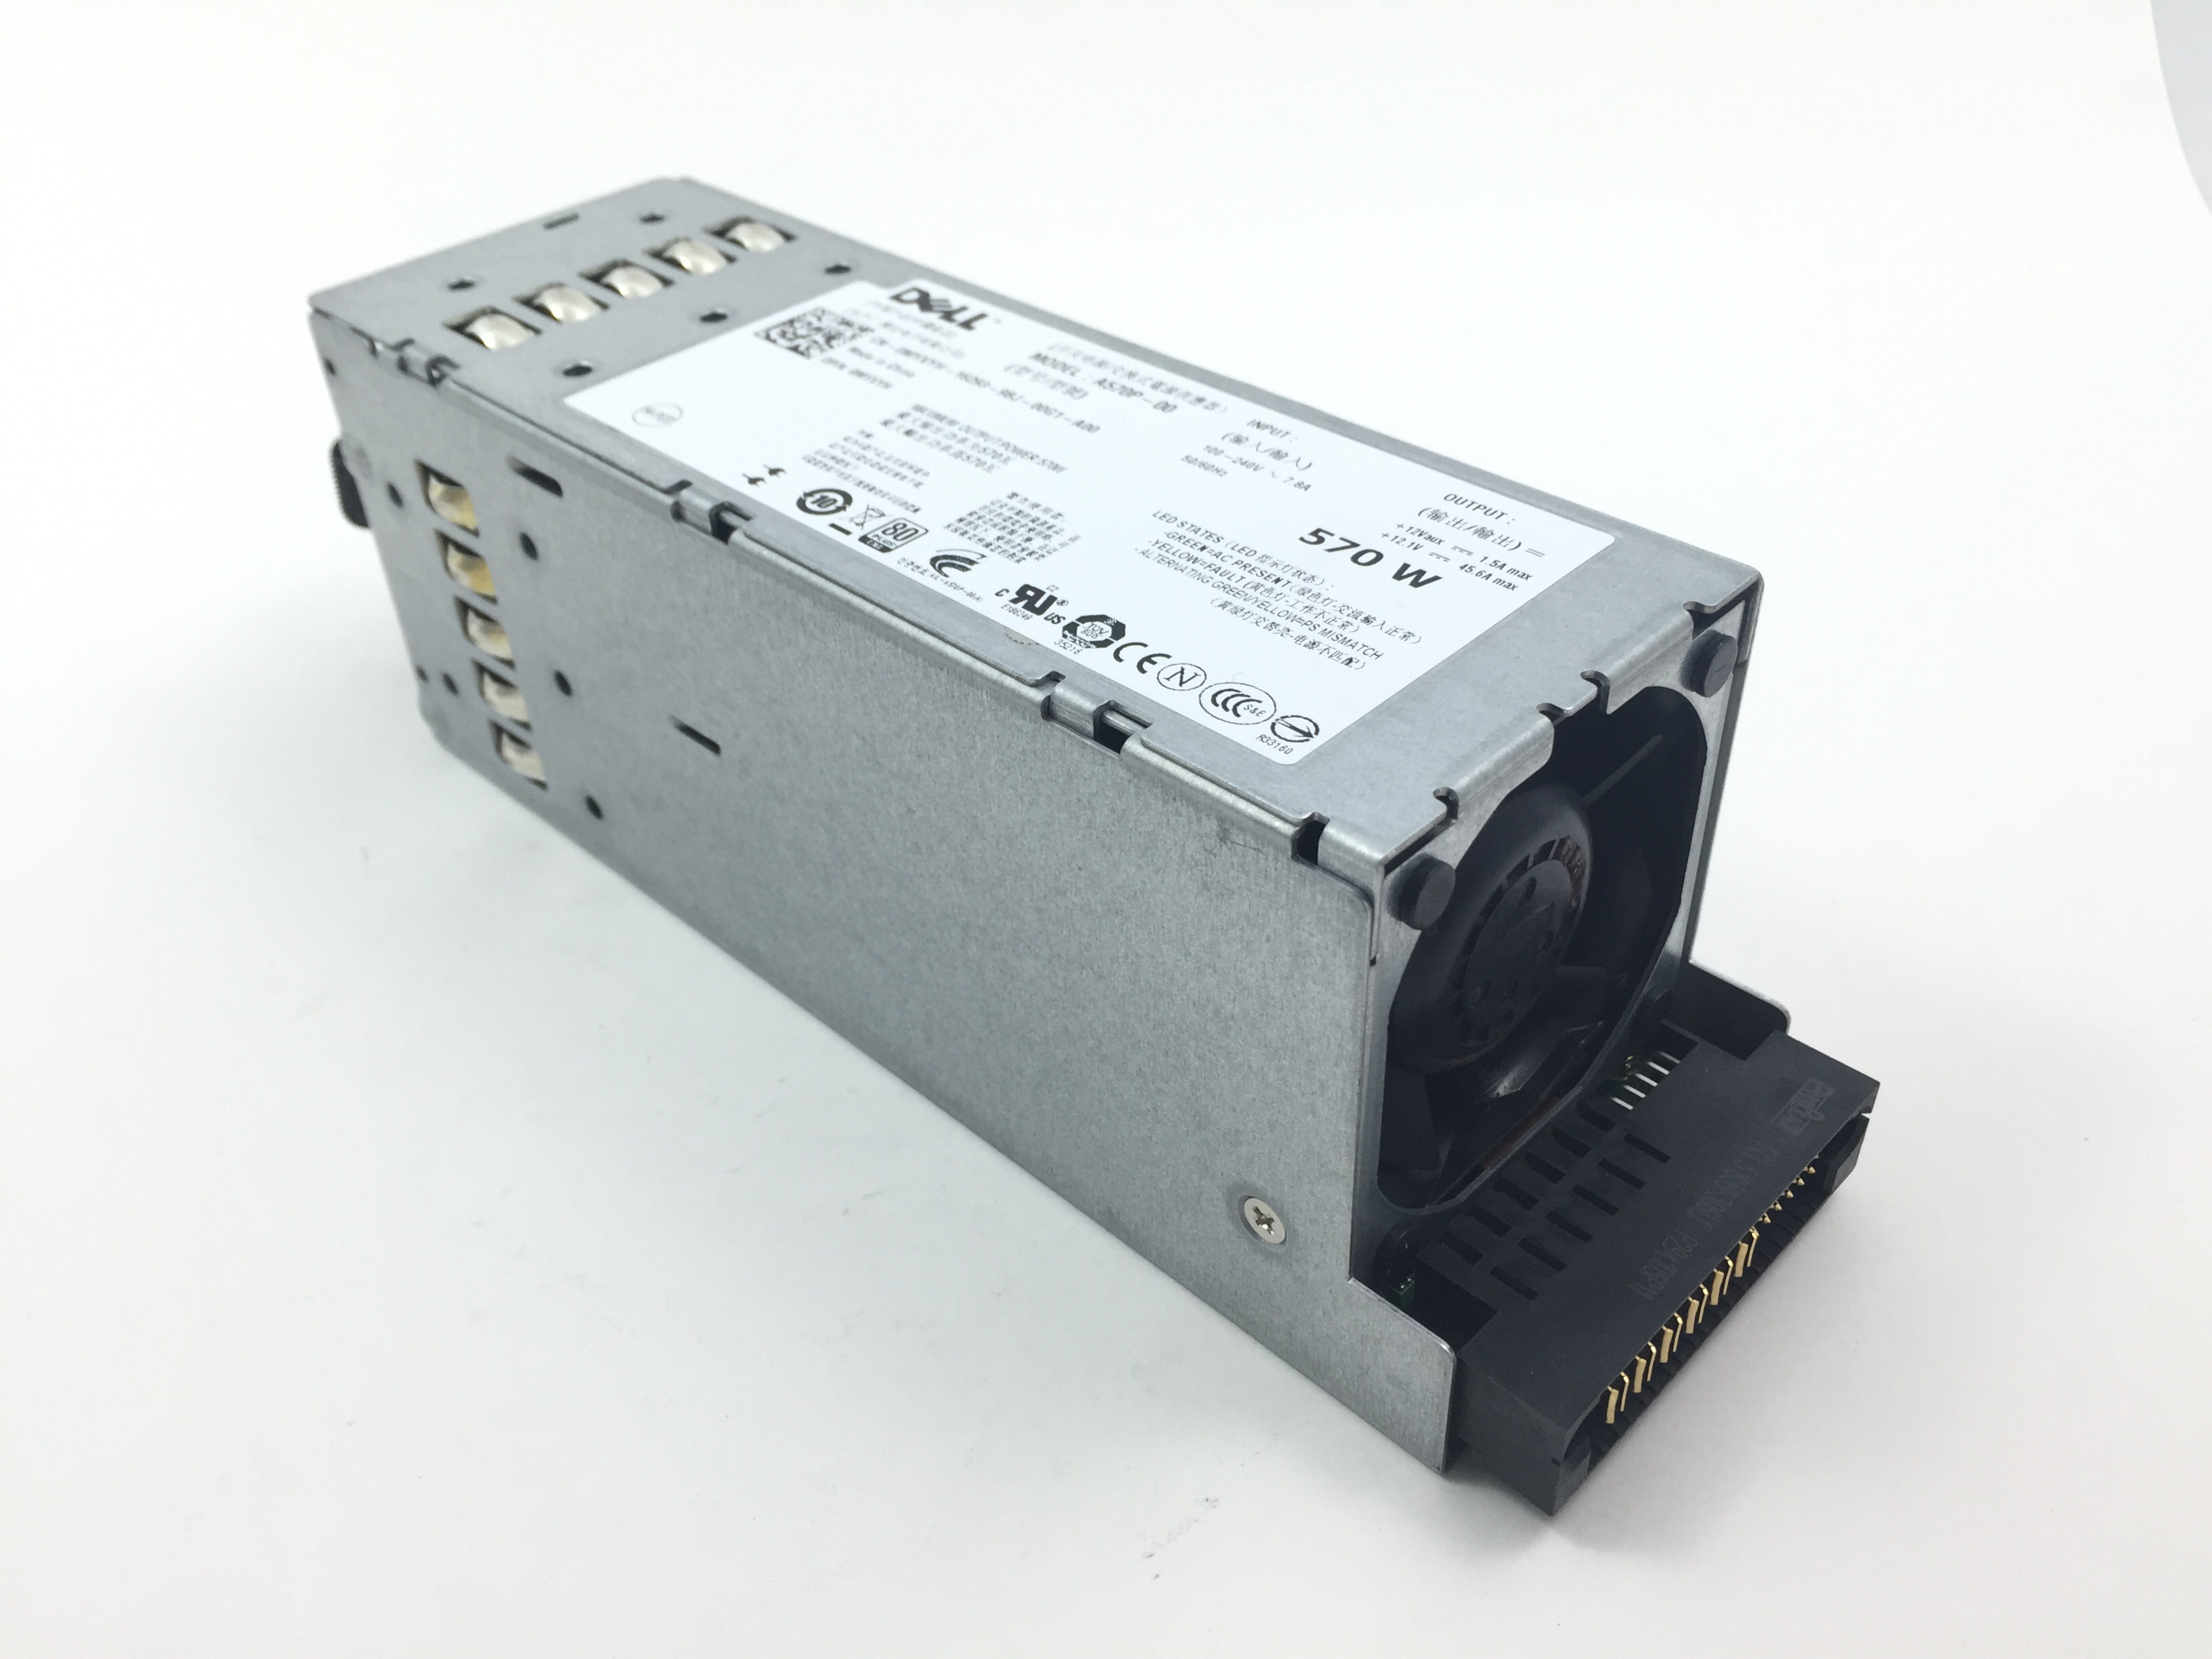 MYXYH Dell PowerEdge R710 T610 570W Power Supply (MYXYH)